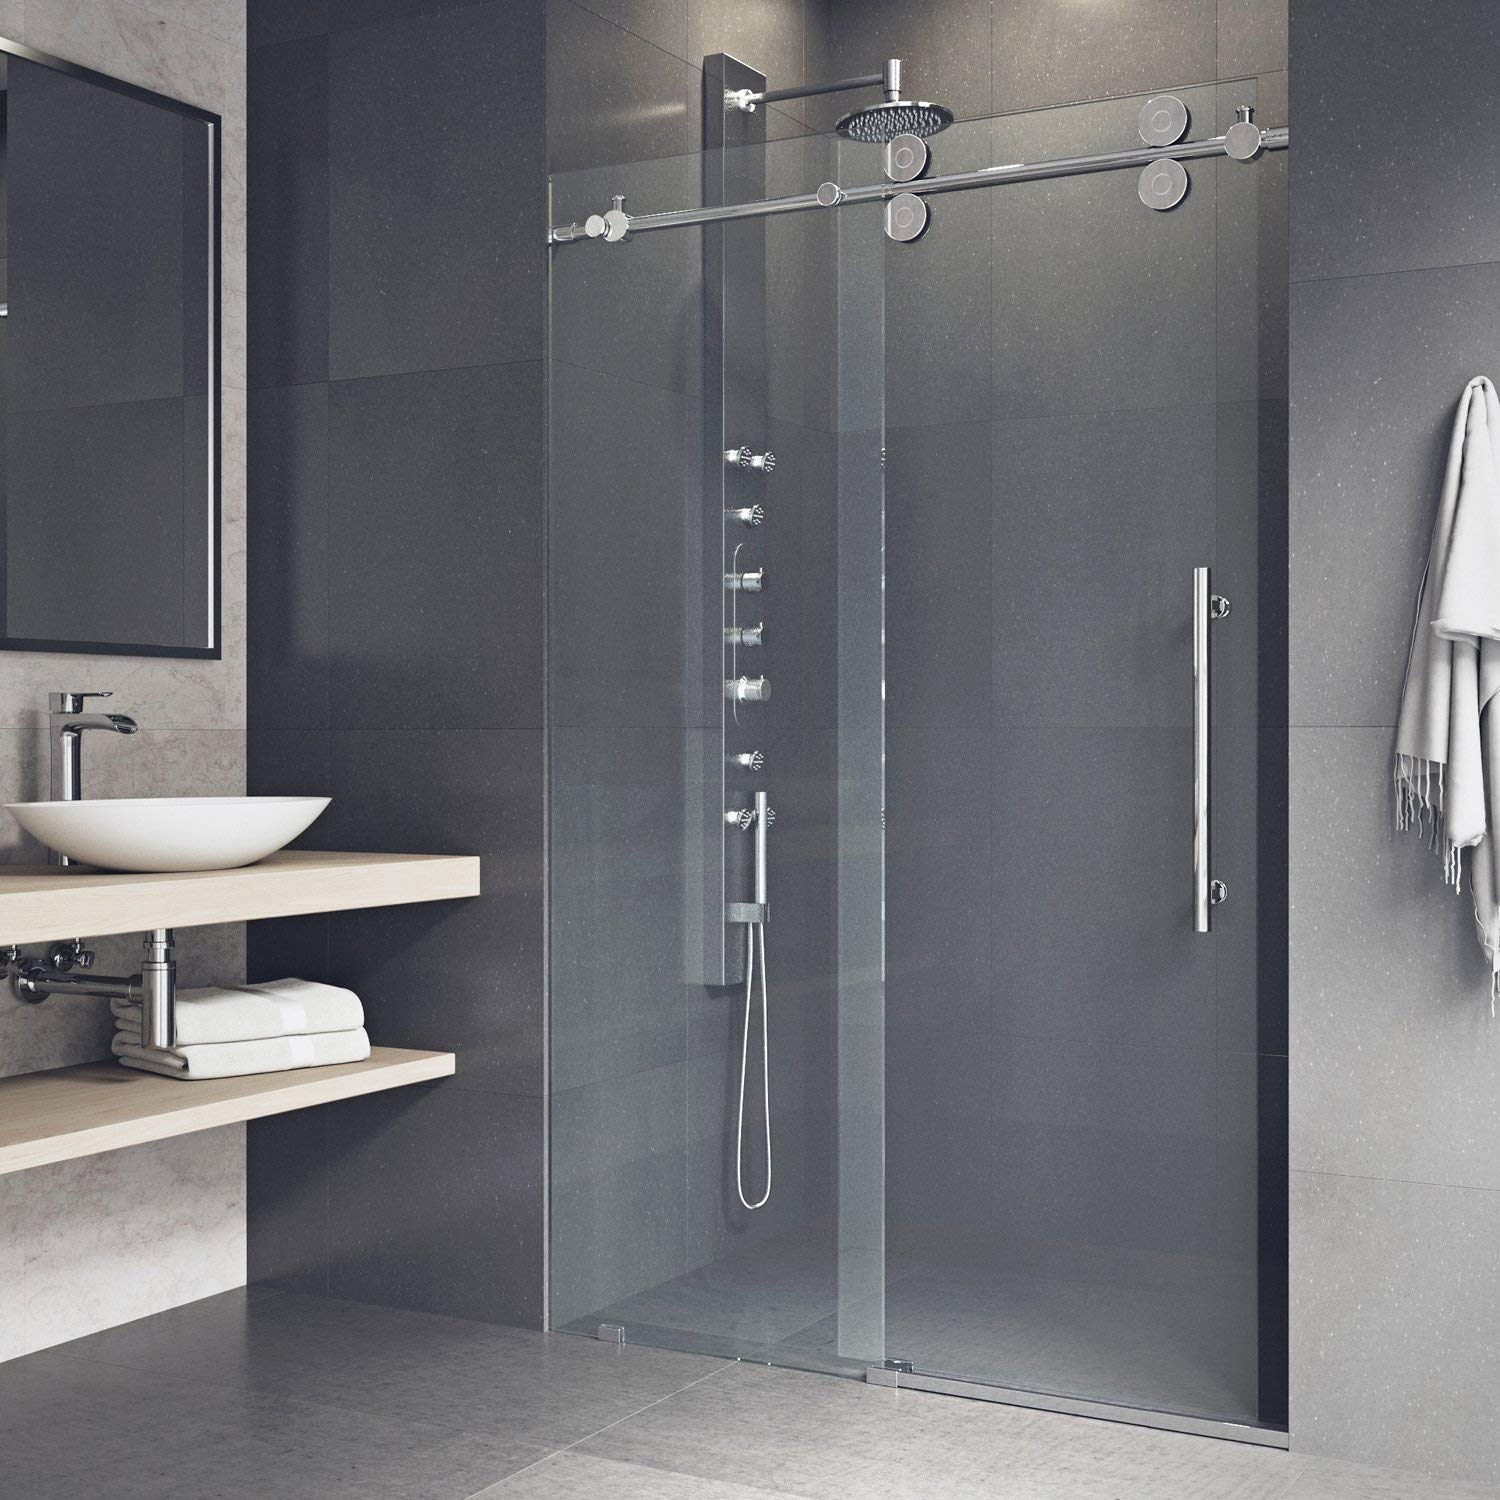 Best Shower Door Reviews in 2019